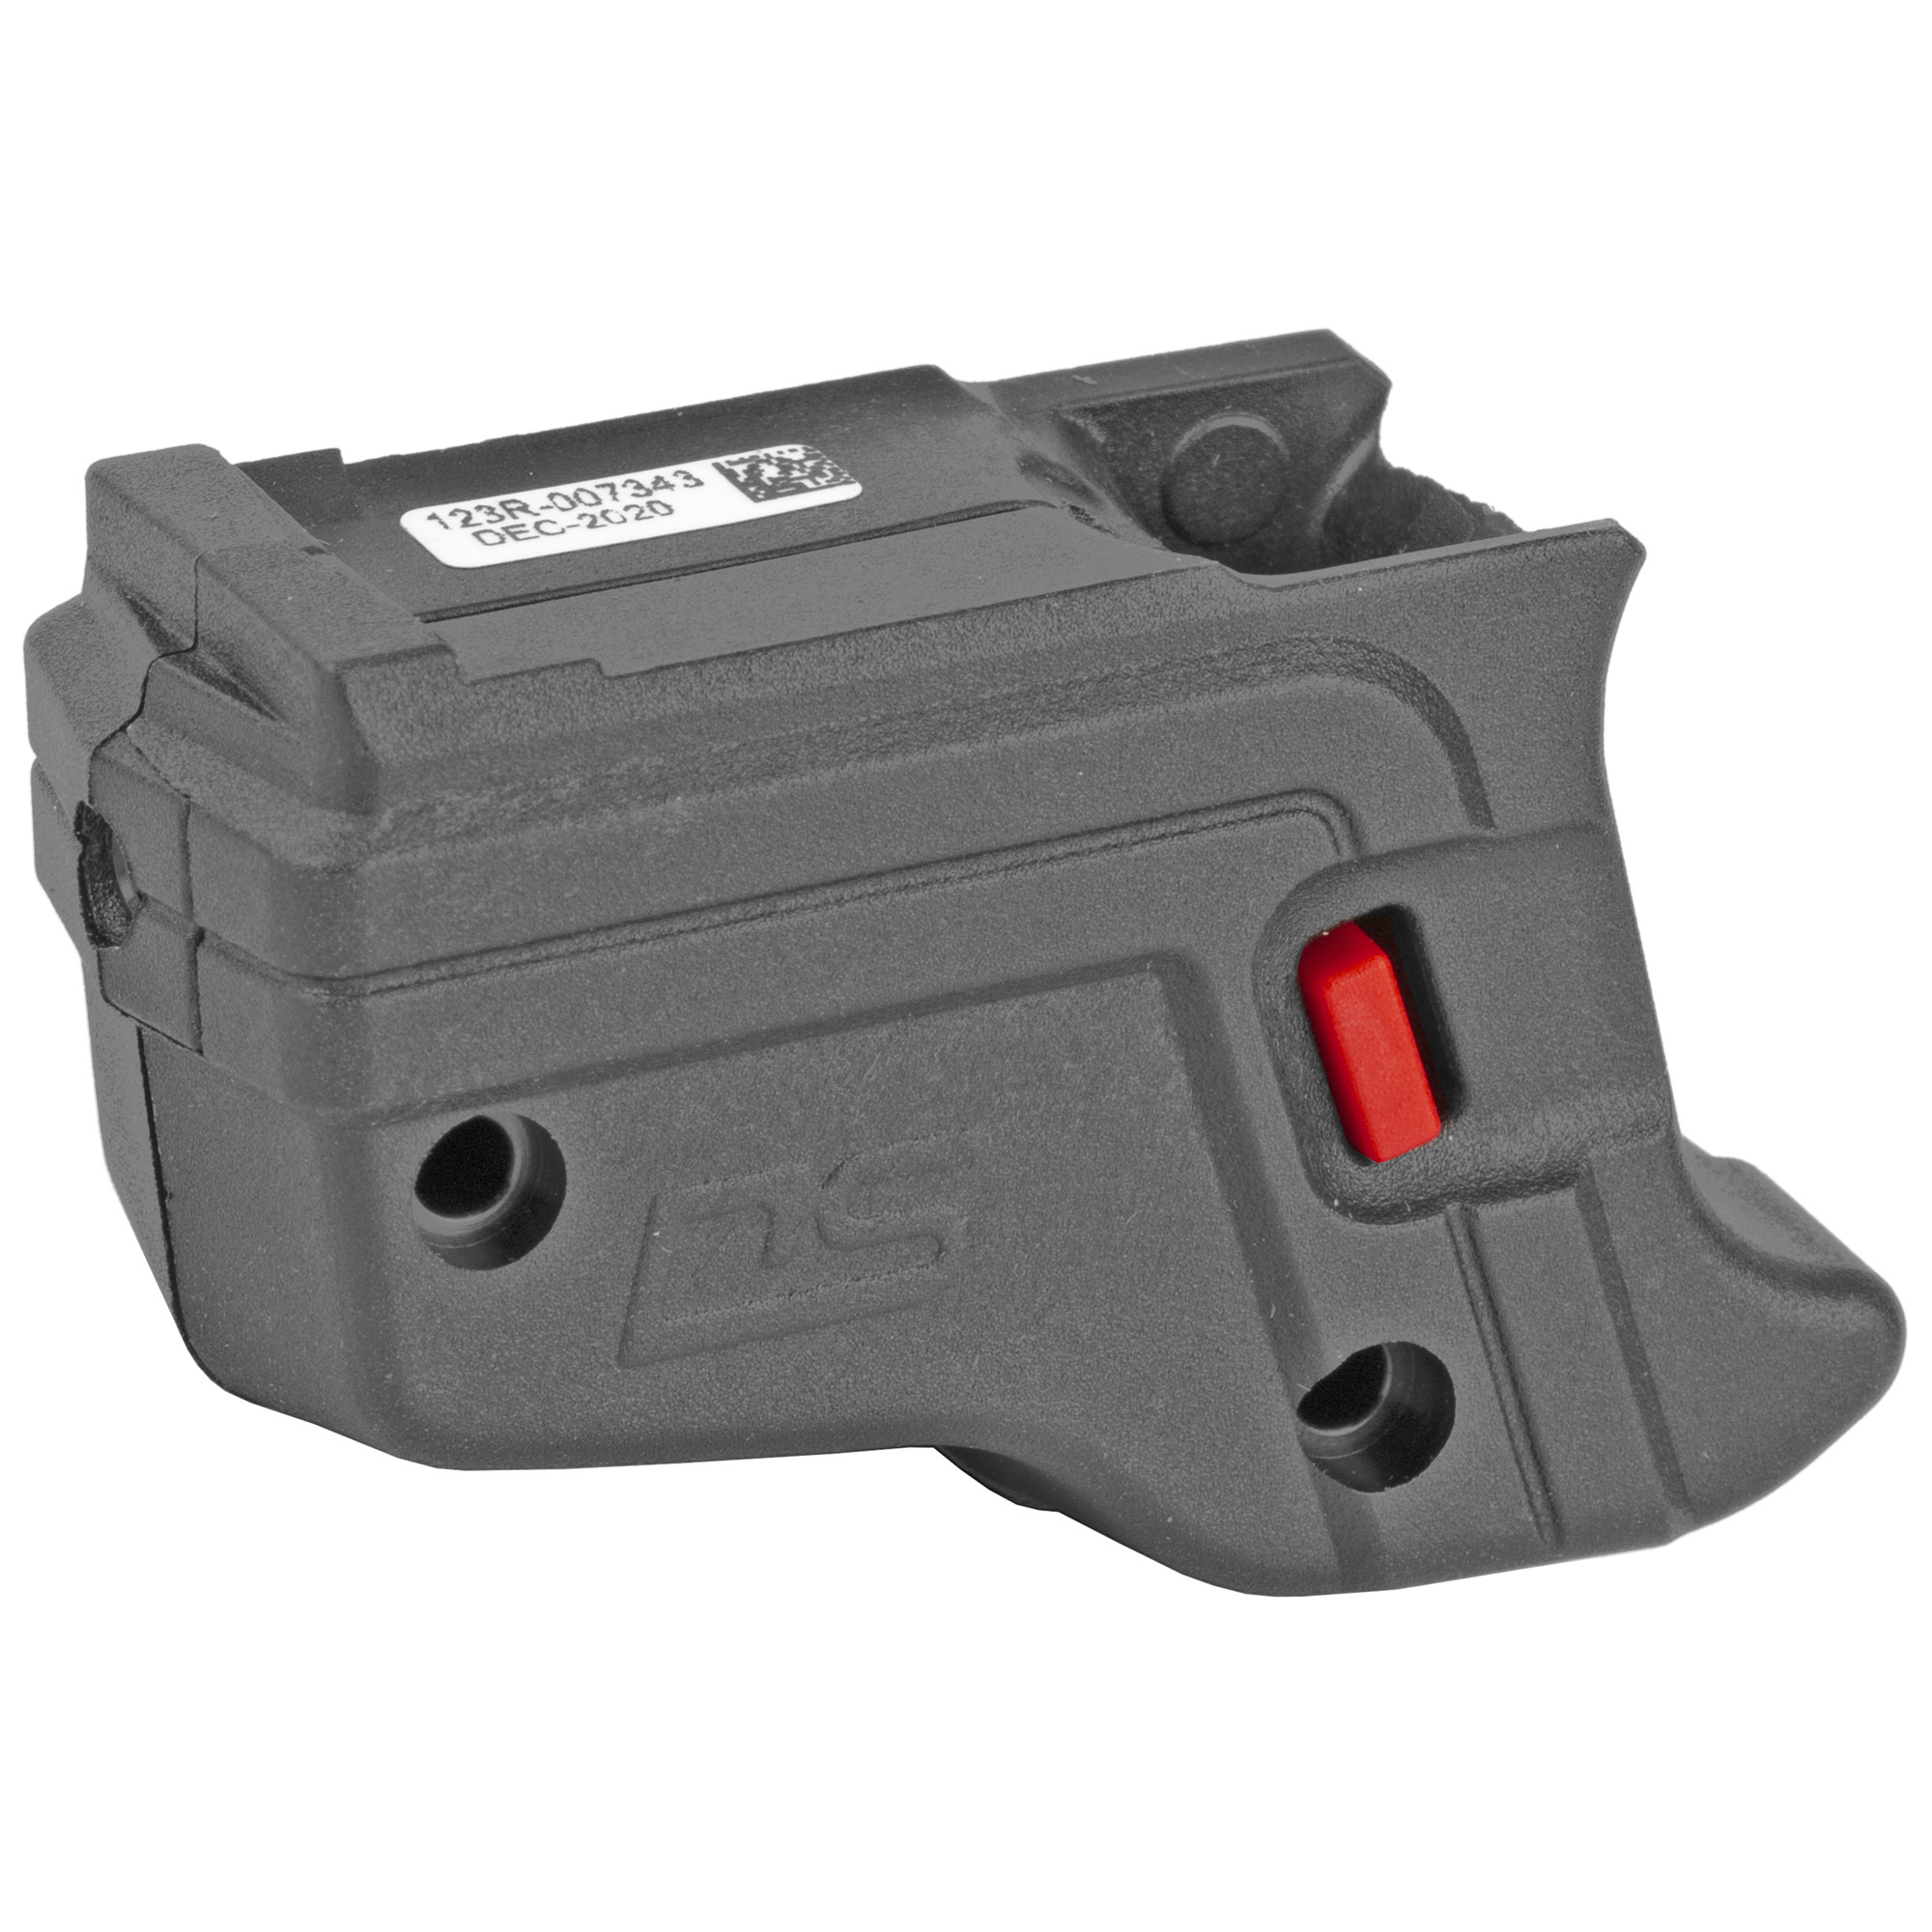 """The DS-123 Defender Series(TM) Accu-Guard(TM) Laser Sight by Crimson Trace fits Springfield Armory XD"""" XD Mod.2 and XD(M) pistols. The Defender Series sets a new standard for a Springfield XD laser sight by providing cutting edge design"""" superior technology"""" and an affordable price tag. The DS-123 features Beam Lock(TM) Adjustments so that the user can easily adjust laser sighting for both windage and elevation"""" and the unit is pre-sighted at the factory at 50 ft. The Dual Side N-Gage(TM) Activation Buttons provide a large"""" easy-to-find"""" bright red activation button"""" which emits a powerful (5mW peak"""" 620-670nm"""" Class 3R) red aiming laser."""